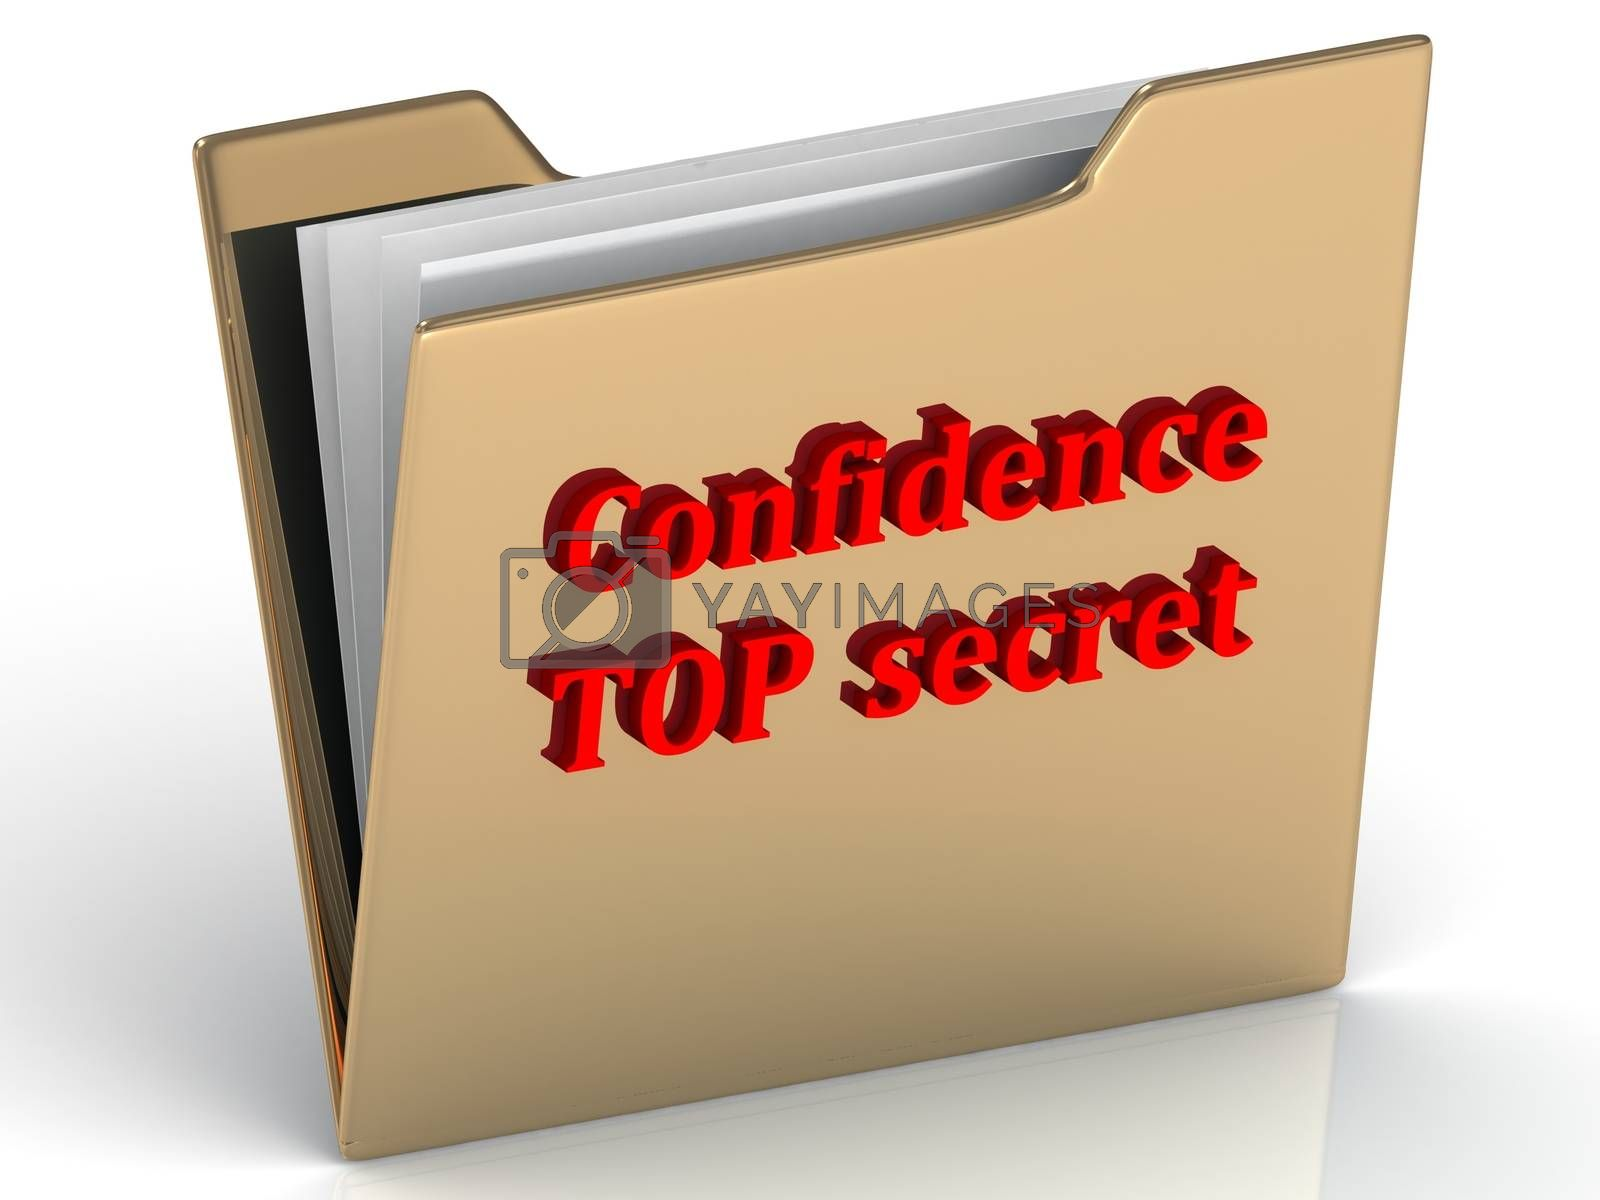 Confidence secret - bright green letters on a gold folder on a white background